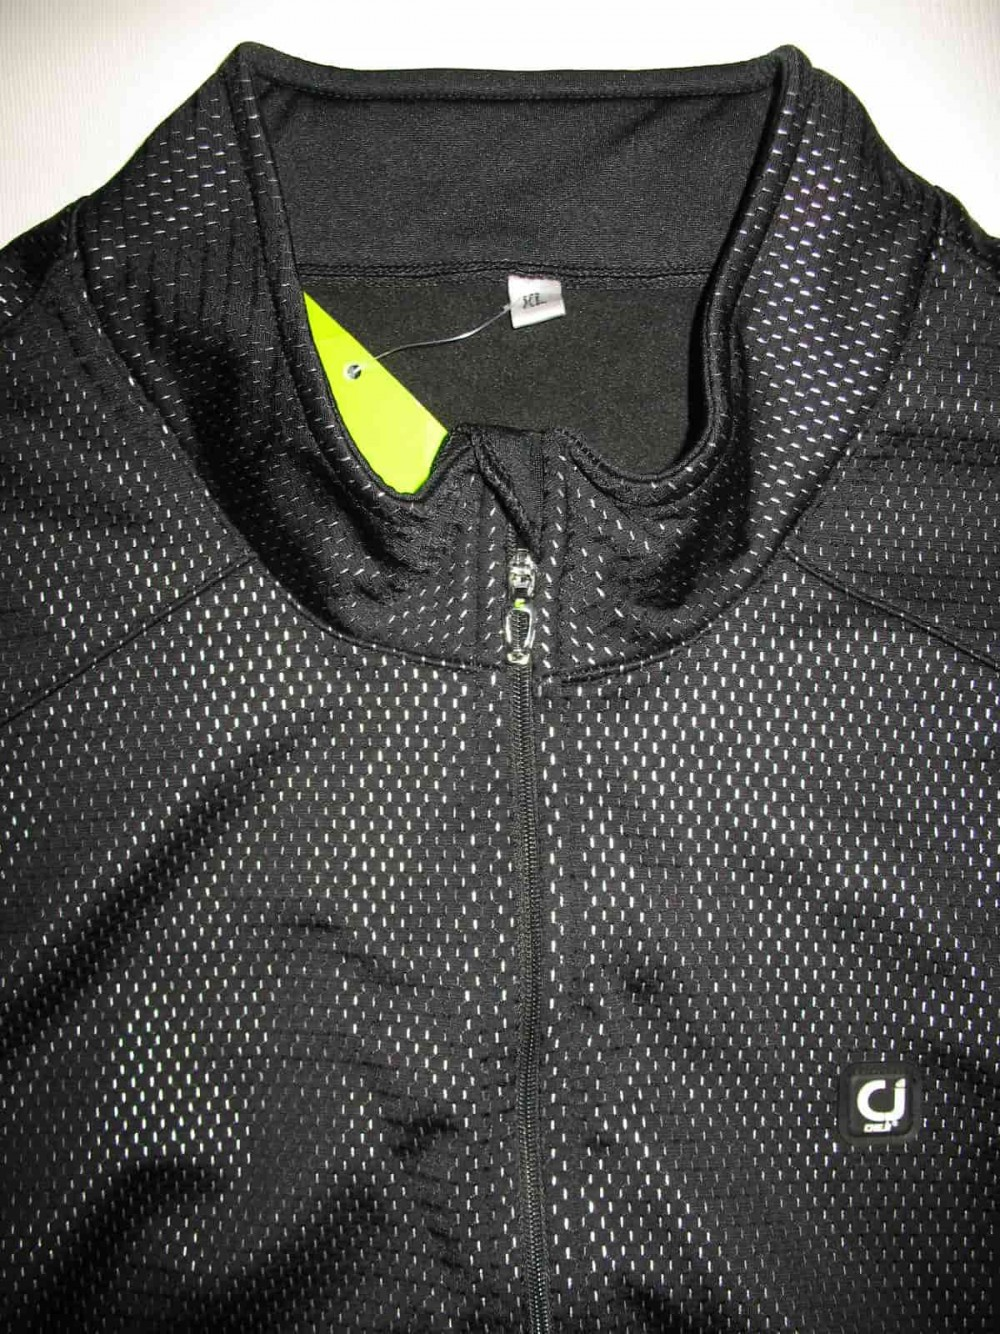 CHEJI cycling windstopper jacket (размер XL/L) - 2